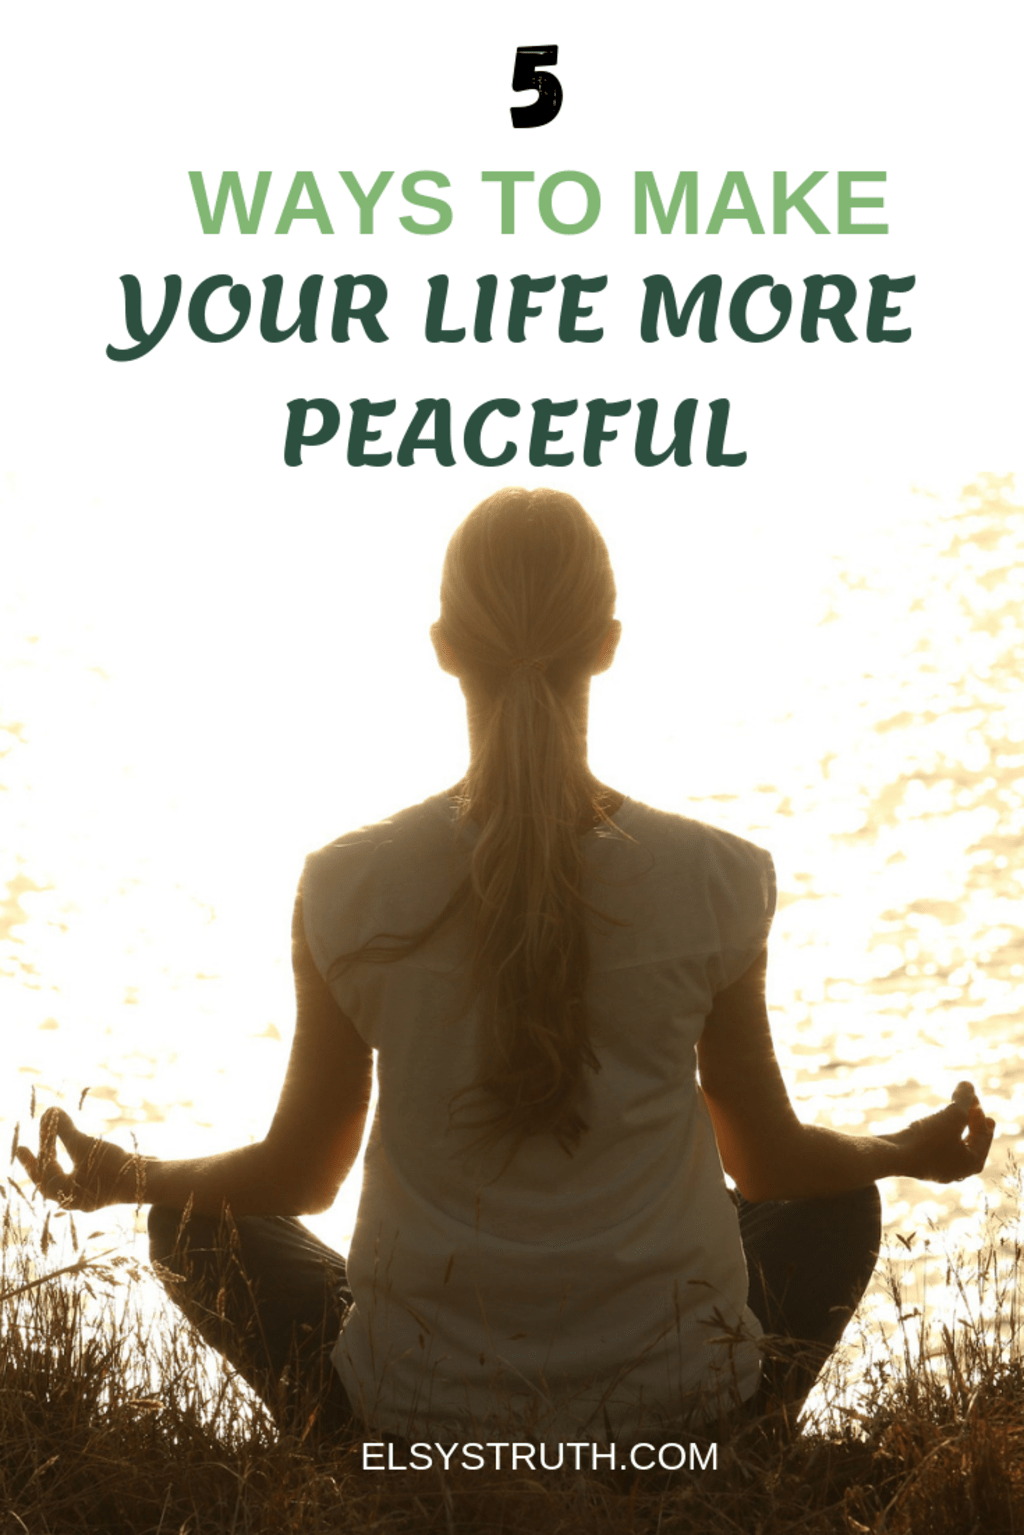 5 Ways to Make Your Life More Peaceful